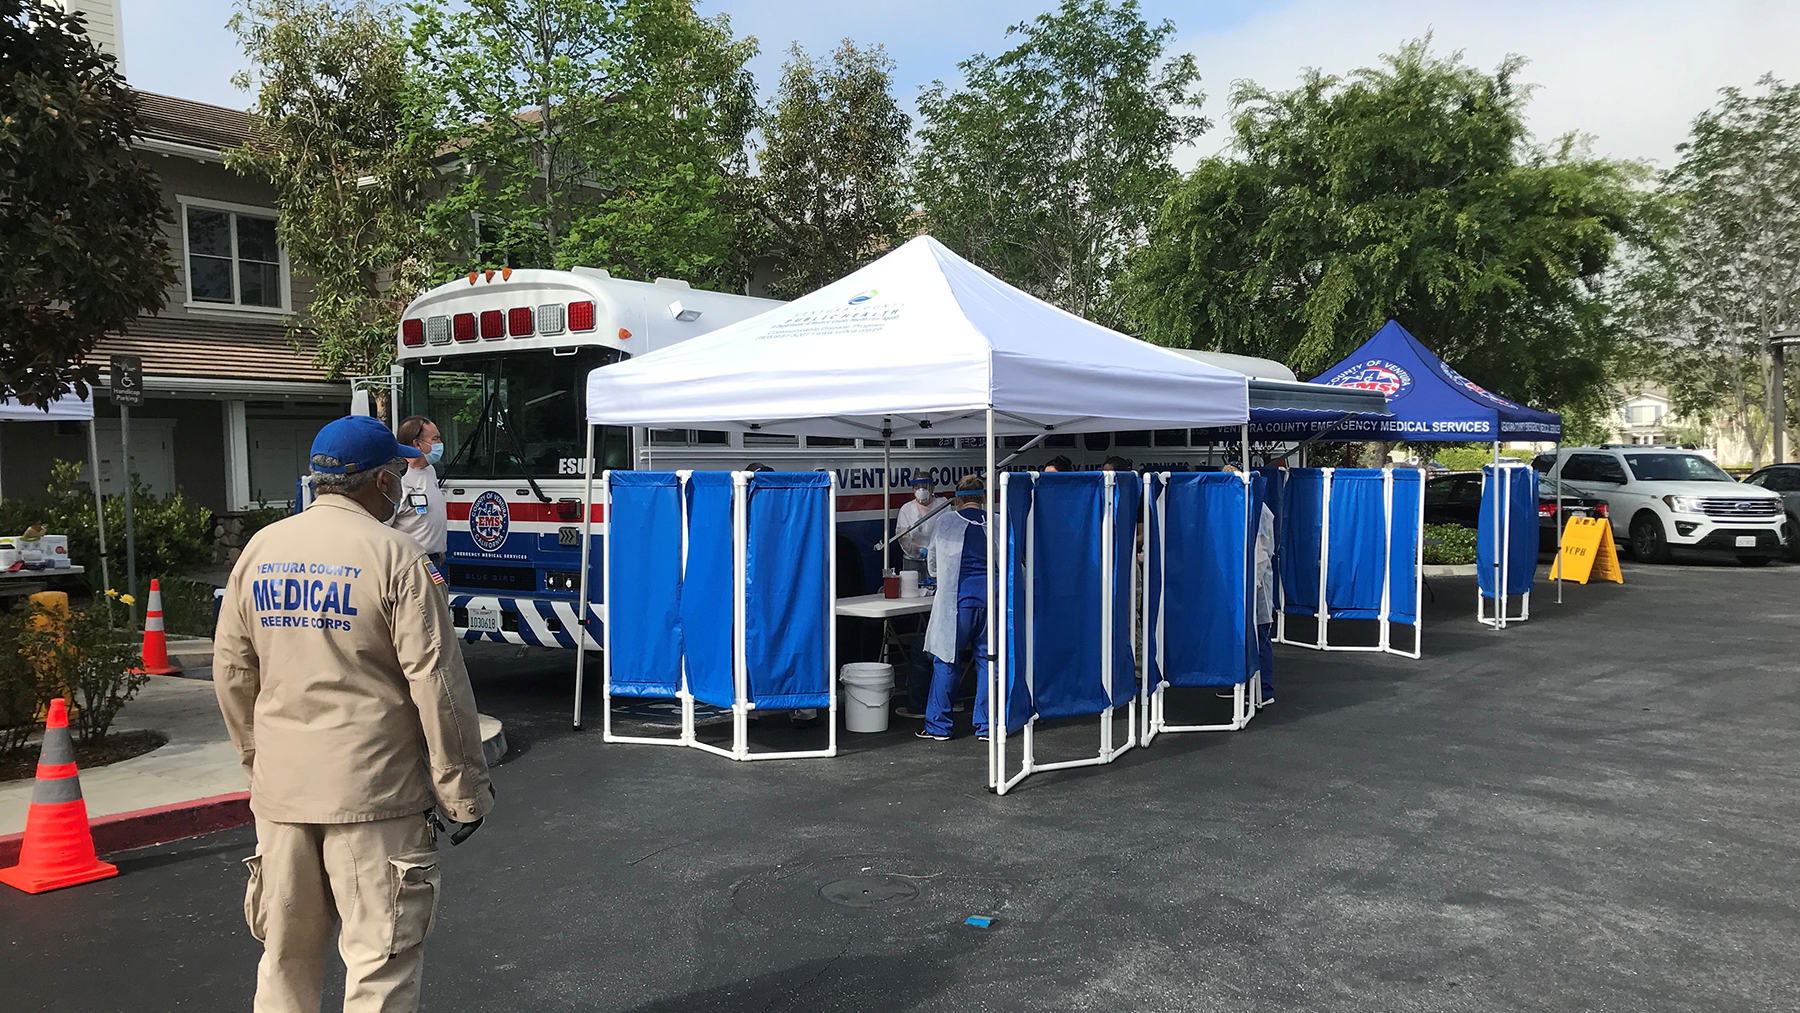 Members of the Ventura County Medical Reserve Corps work at a tent station during the Covid-19 pandemic. (Photo courtesy of the Ventura County Emergency Medical Services Agency)